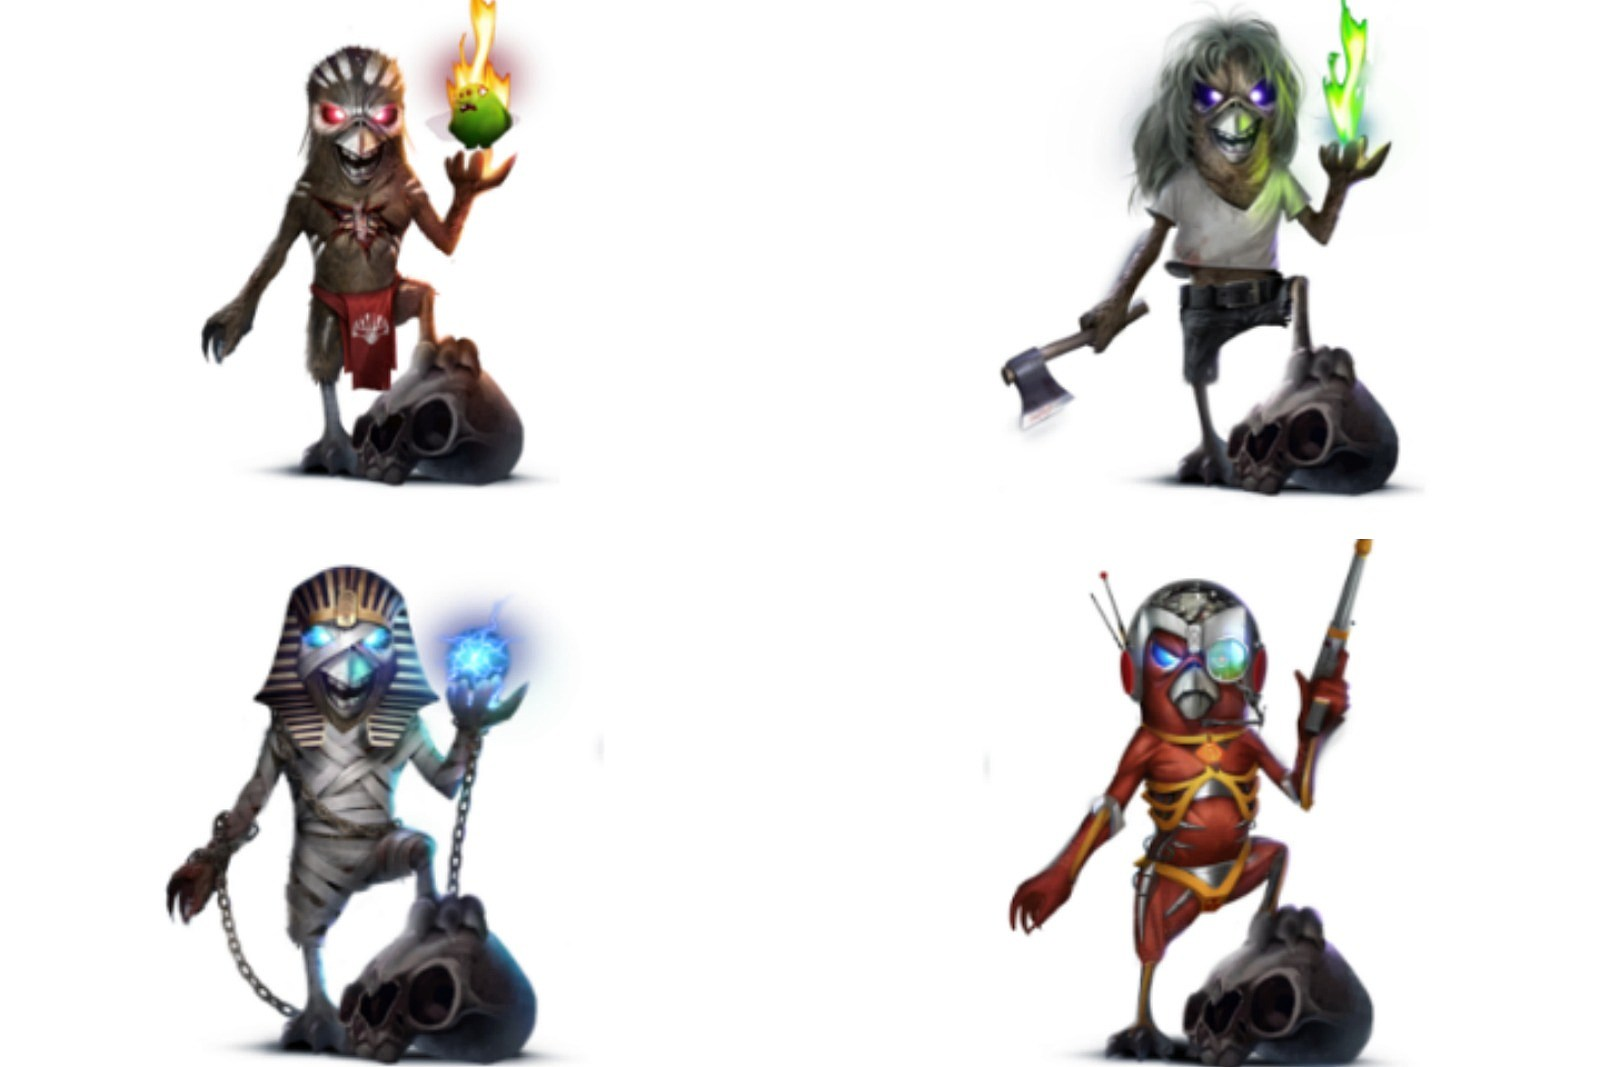 Iron Maiden Mascot Turned Into Playable \'Angry Birds\' Character